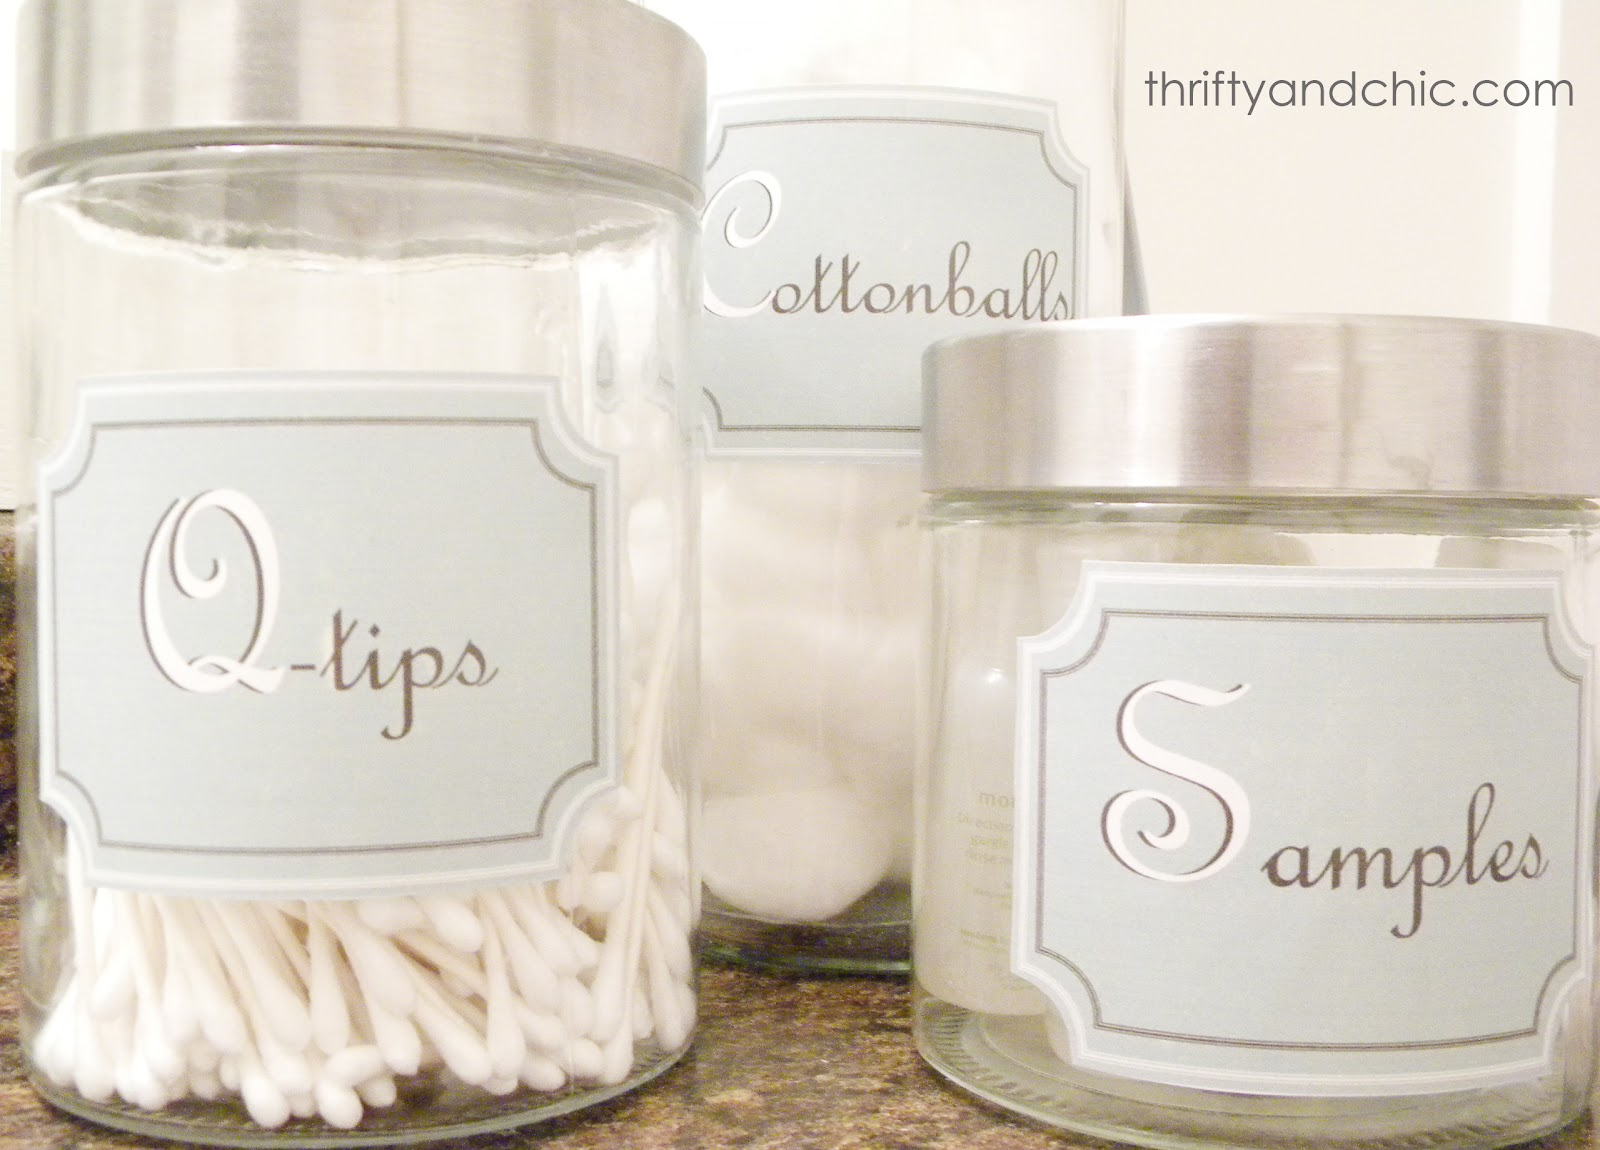 Thrifty and chic diy projects and home decor for Bathroom containers